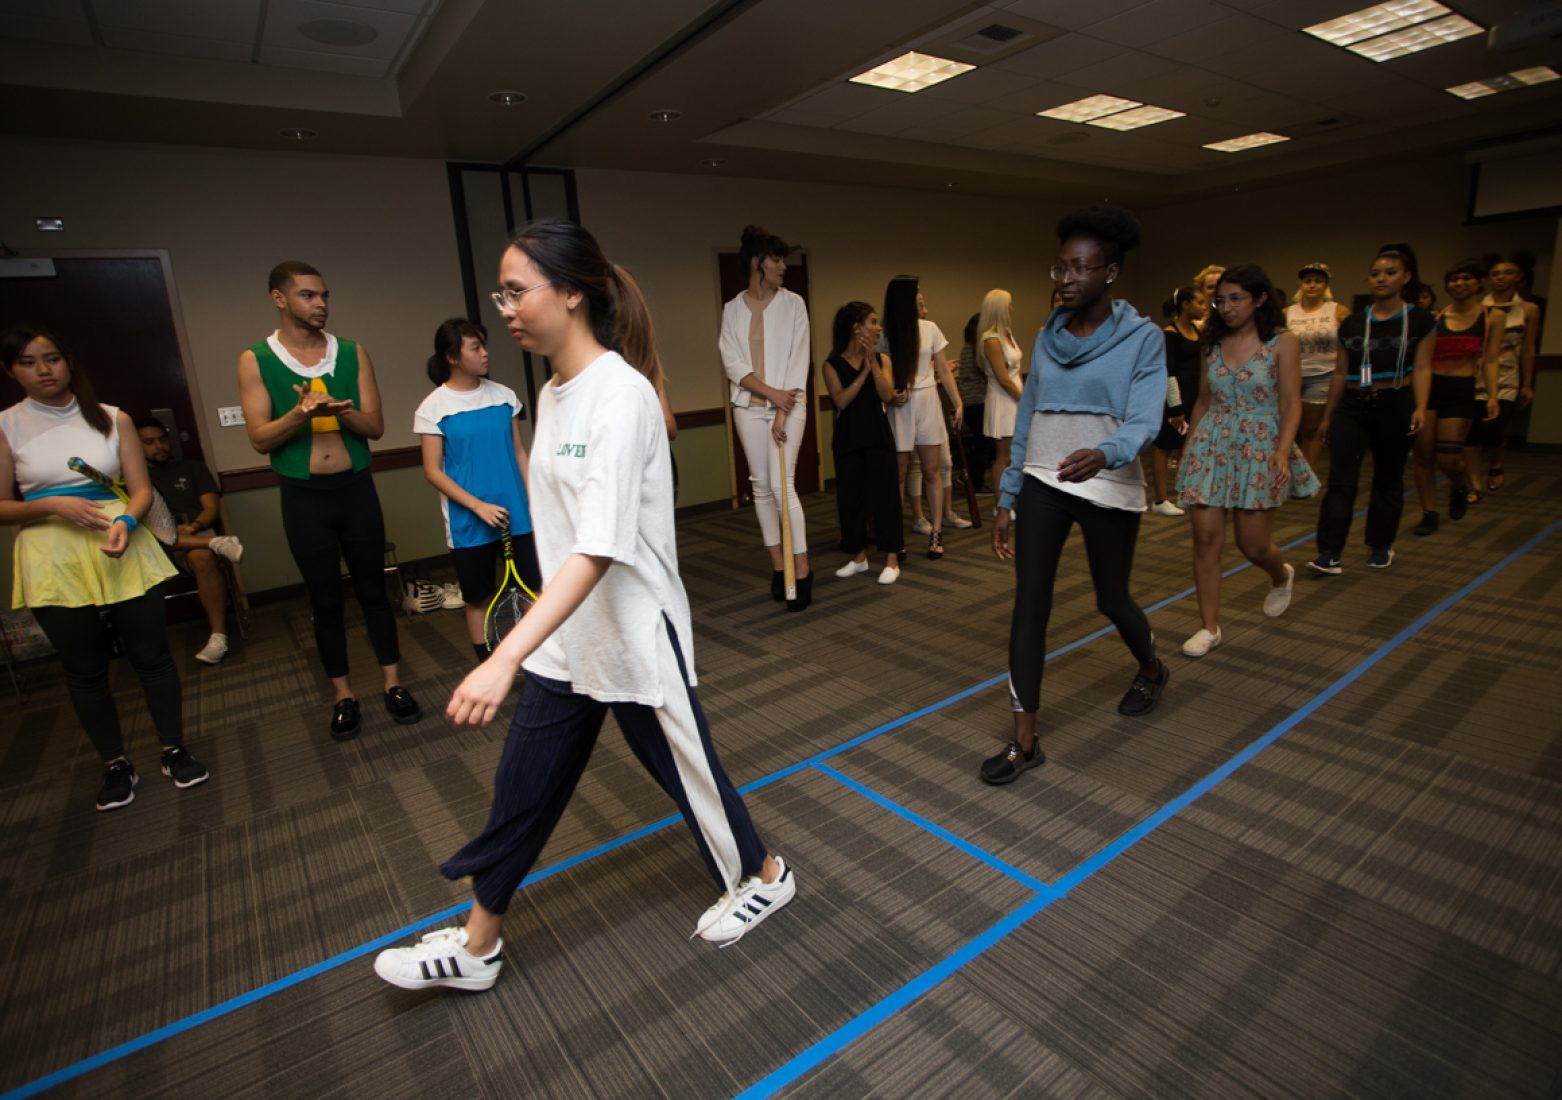 Members from the Student Fashion Association, models and volunteers practice the show's timing during rehearsal in the University Union Foothill Suite on Wednesday. (Photo by Nicole Fowler)